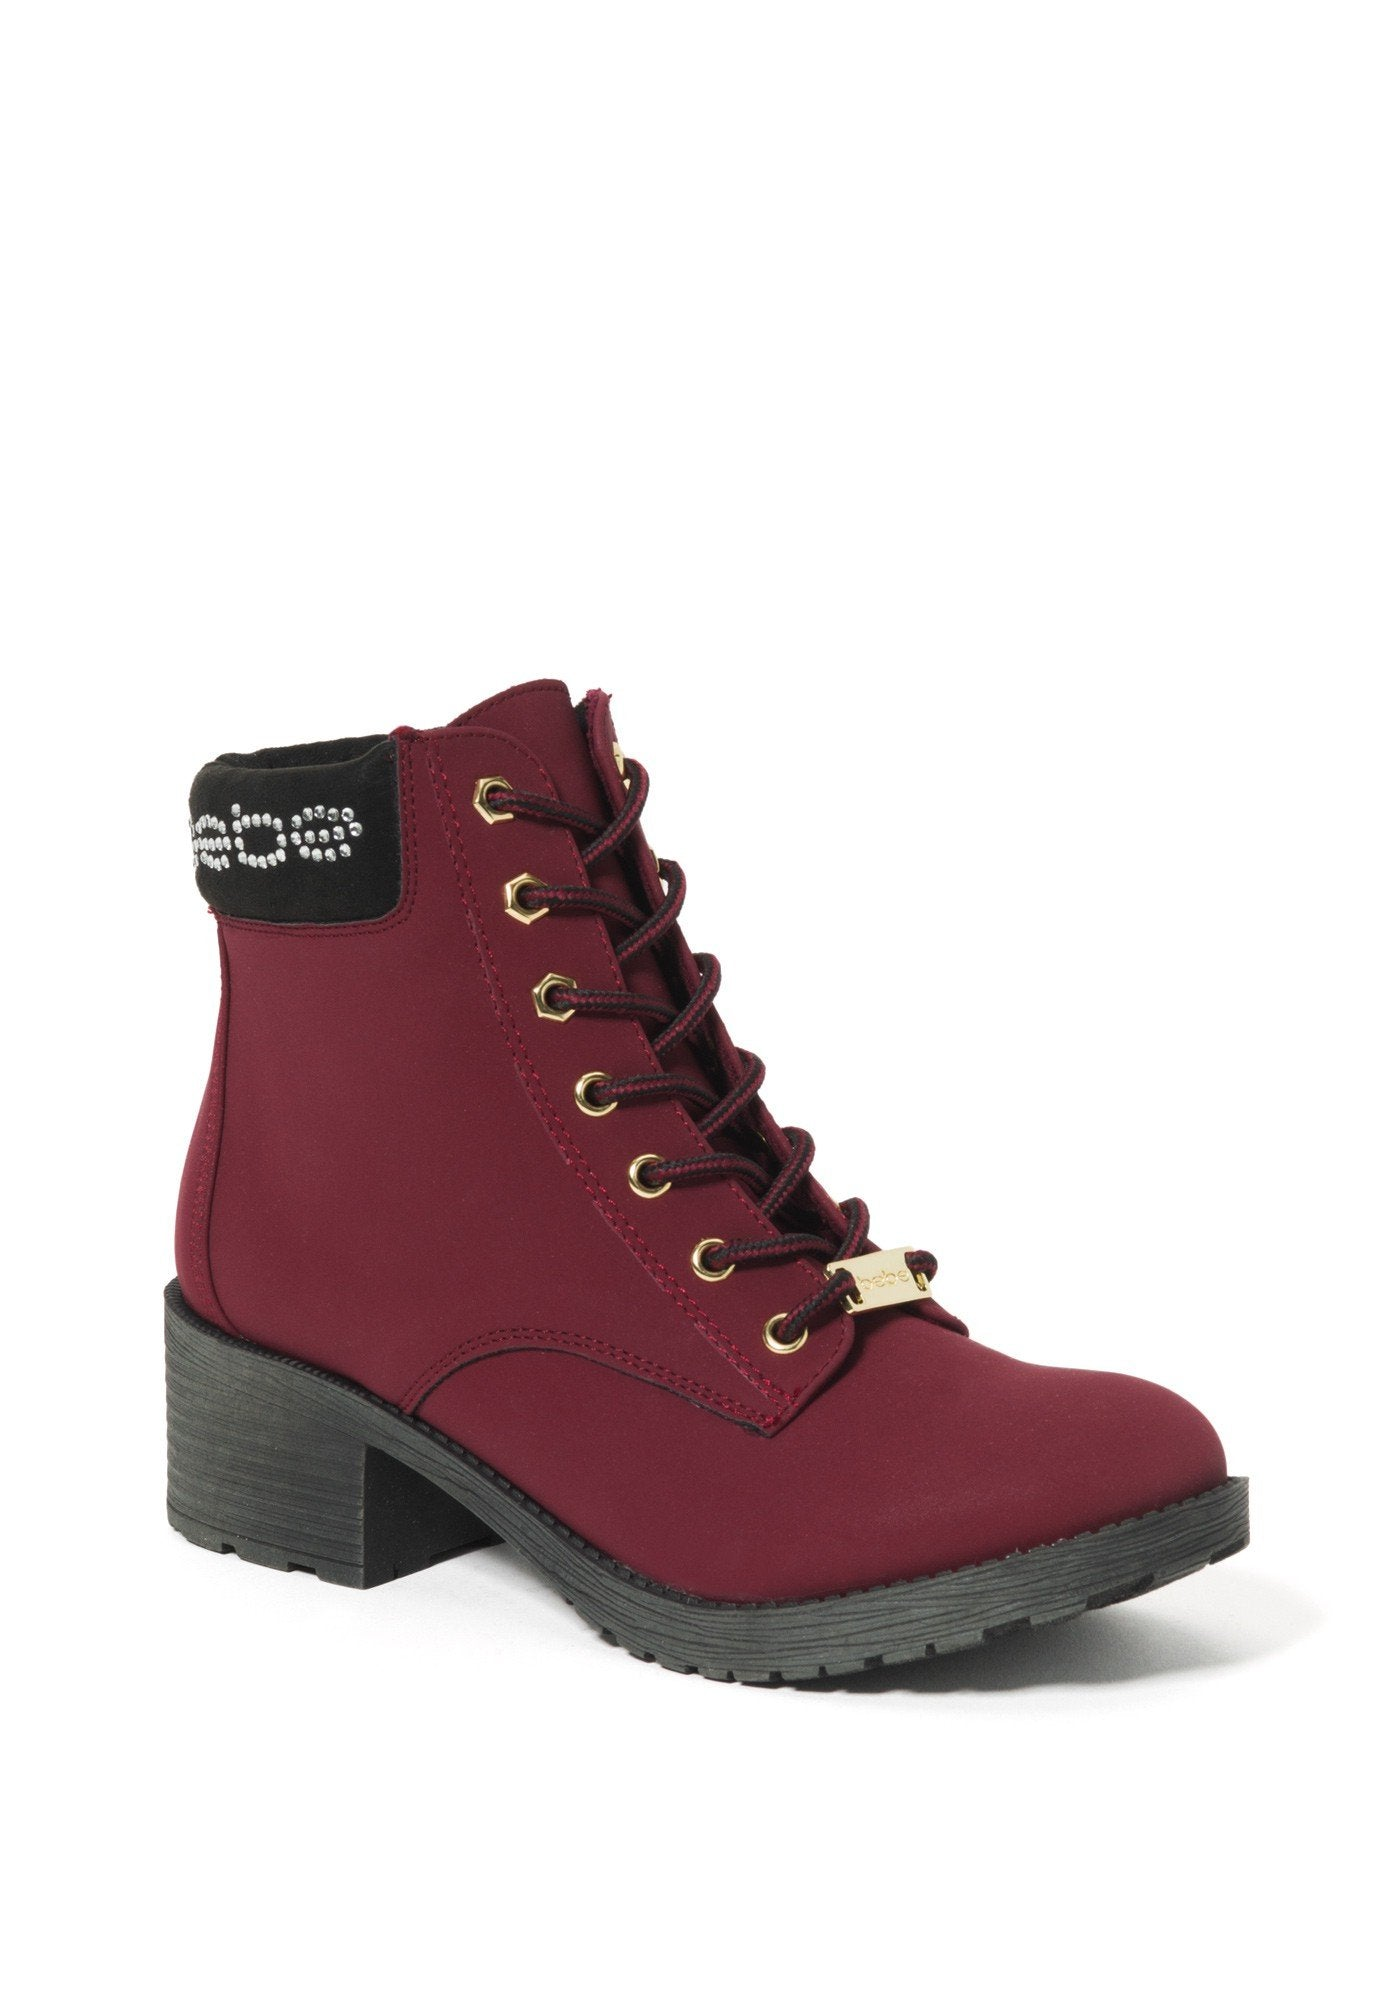 Bebe Women's Shaylie Logo Ankle Boots, Size 6 in Red Synthetic